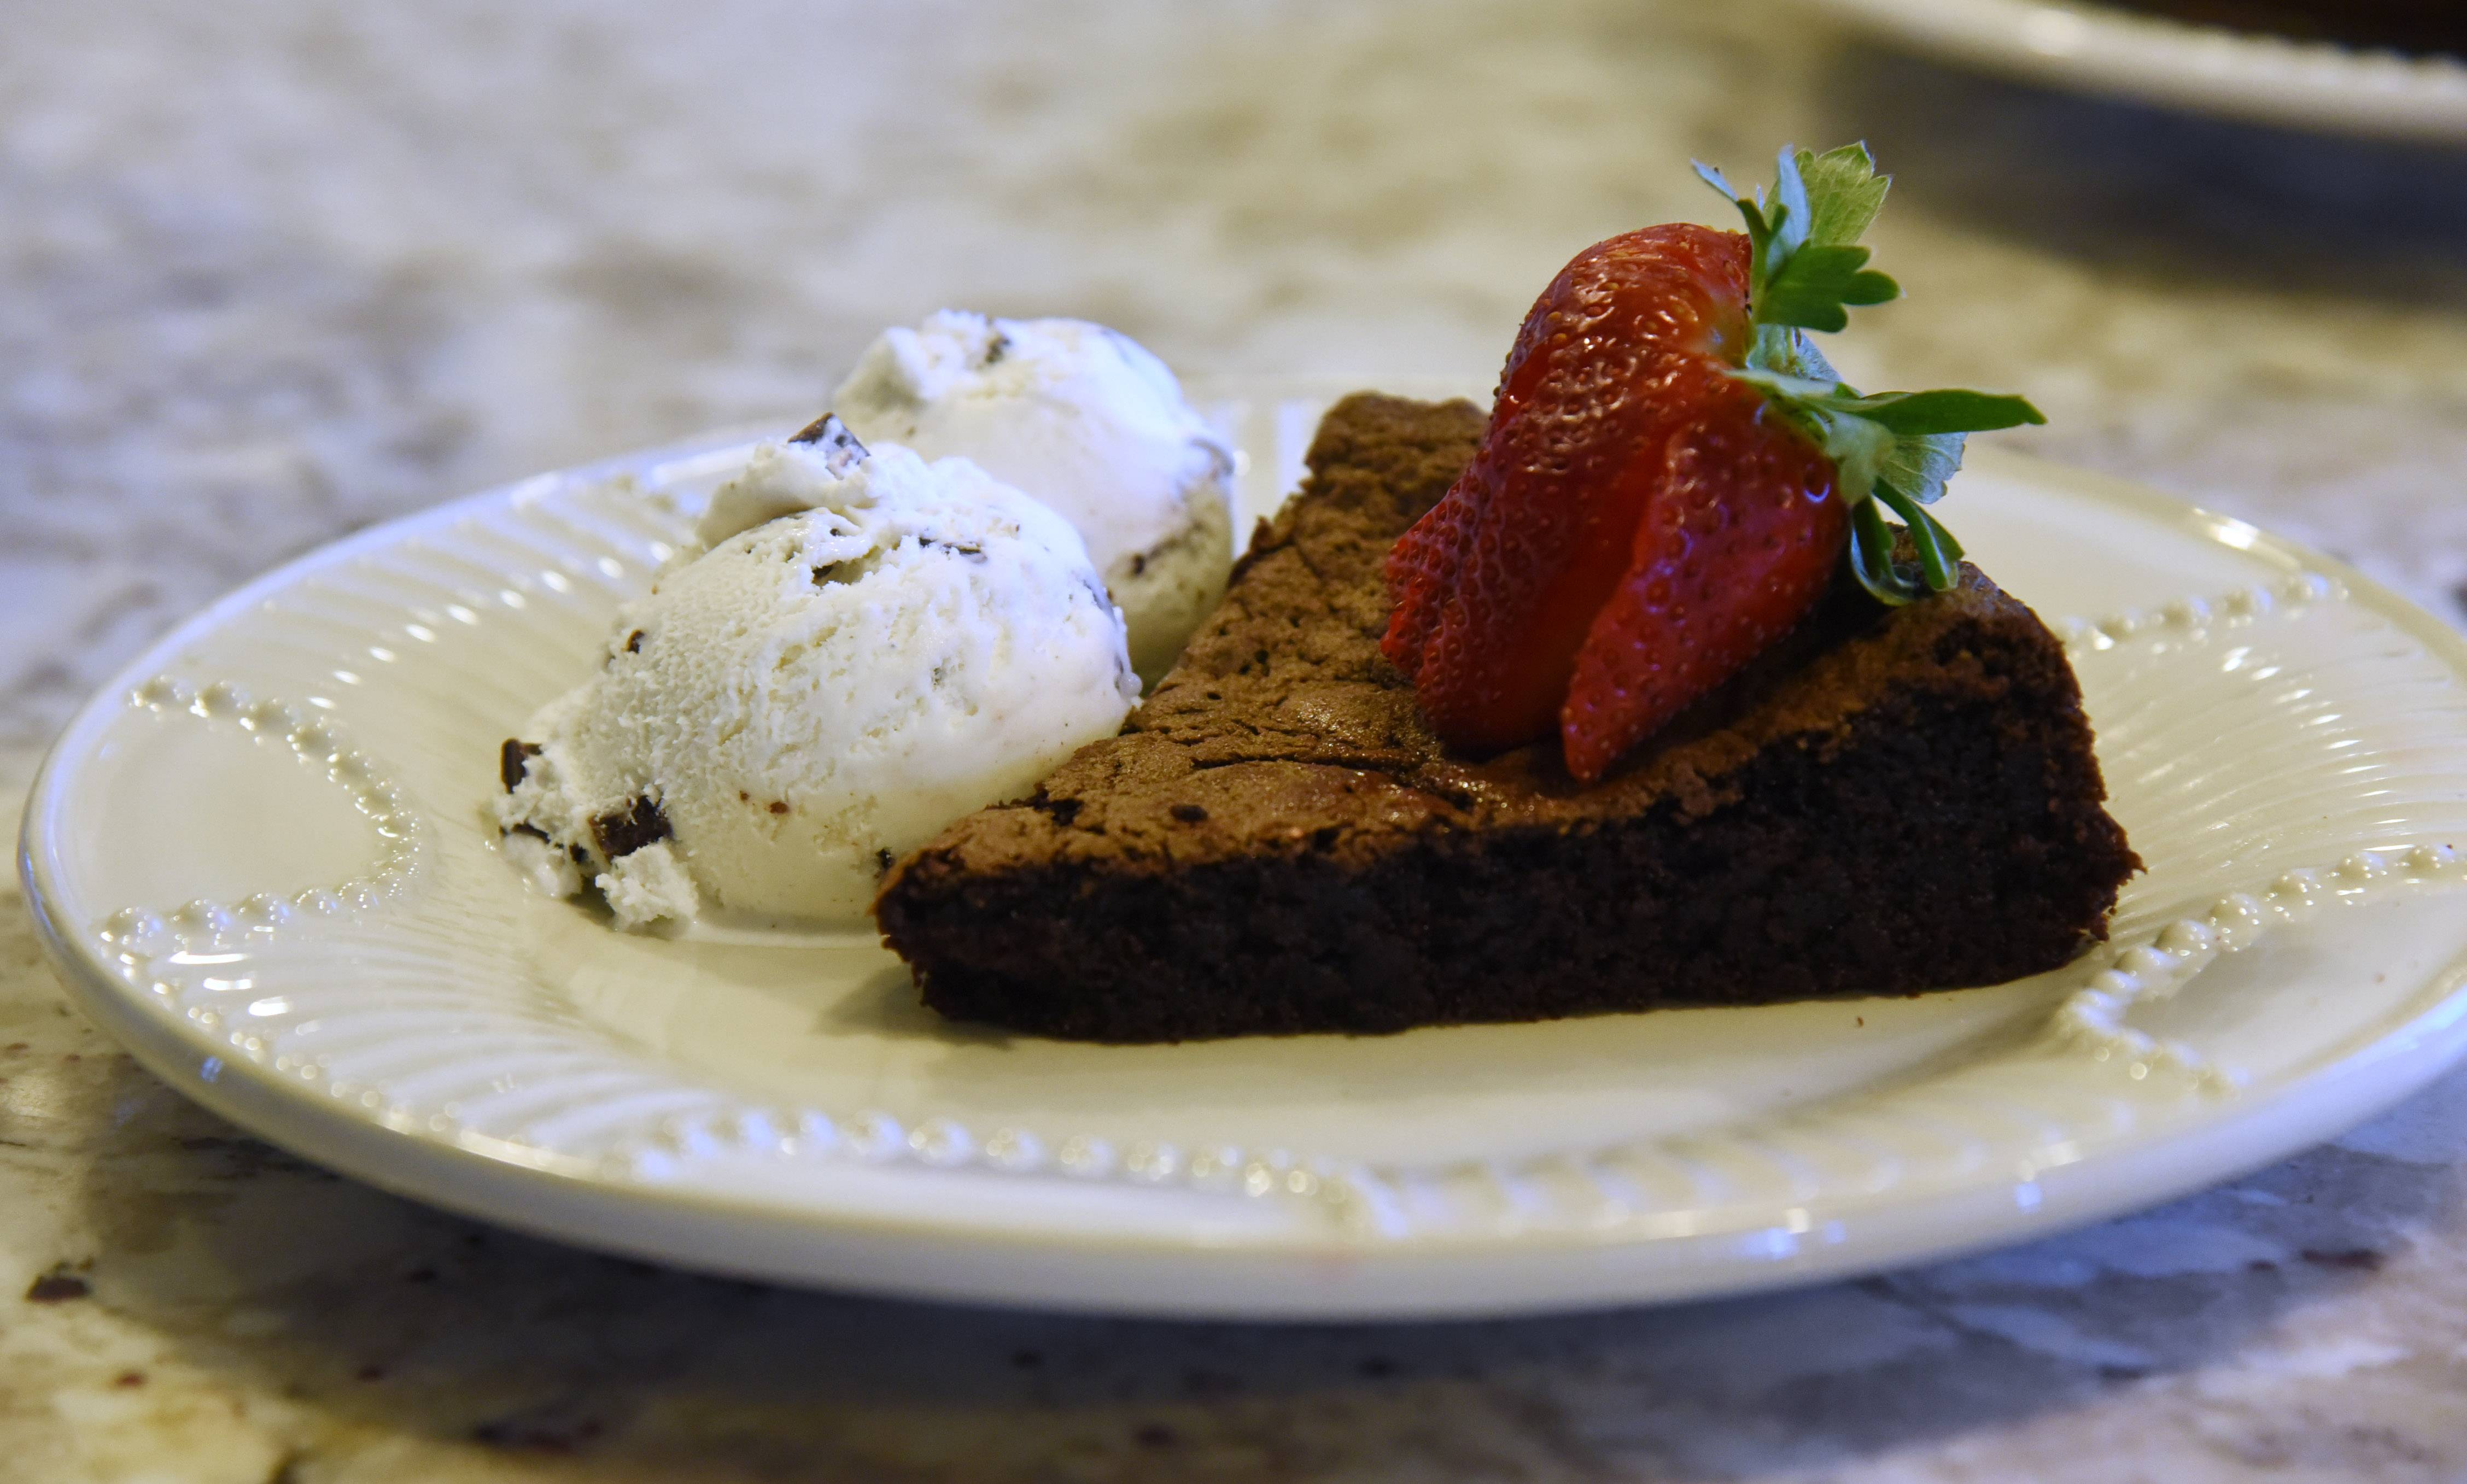 Chocolate cake with ice cream and strawberries is an Abbott family favorite.